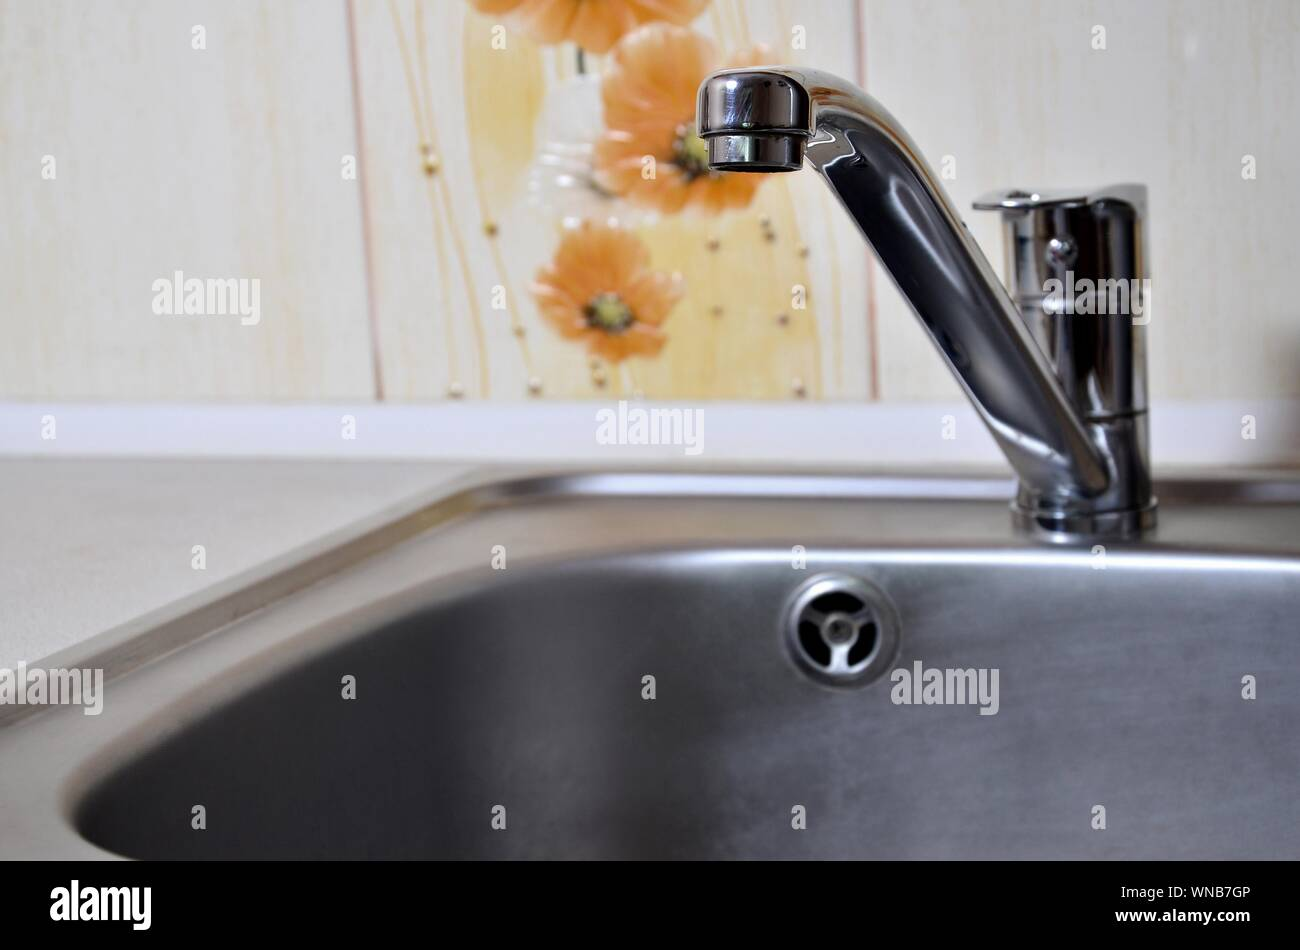 https www alamy com empty clean silvery kitchen sink and water faucet close up indoors image271310726 html